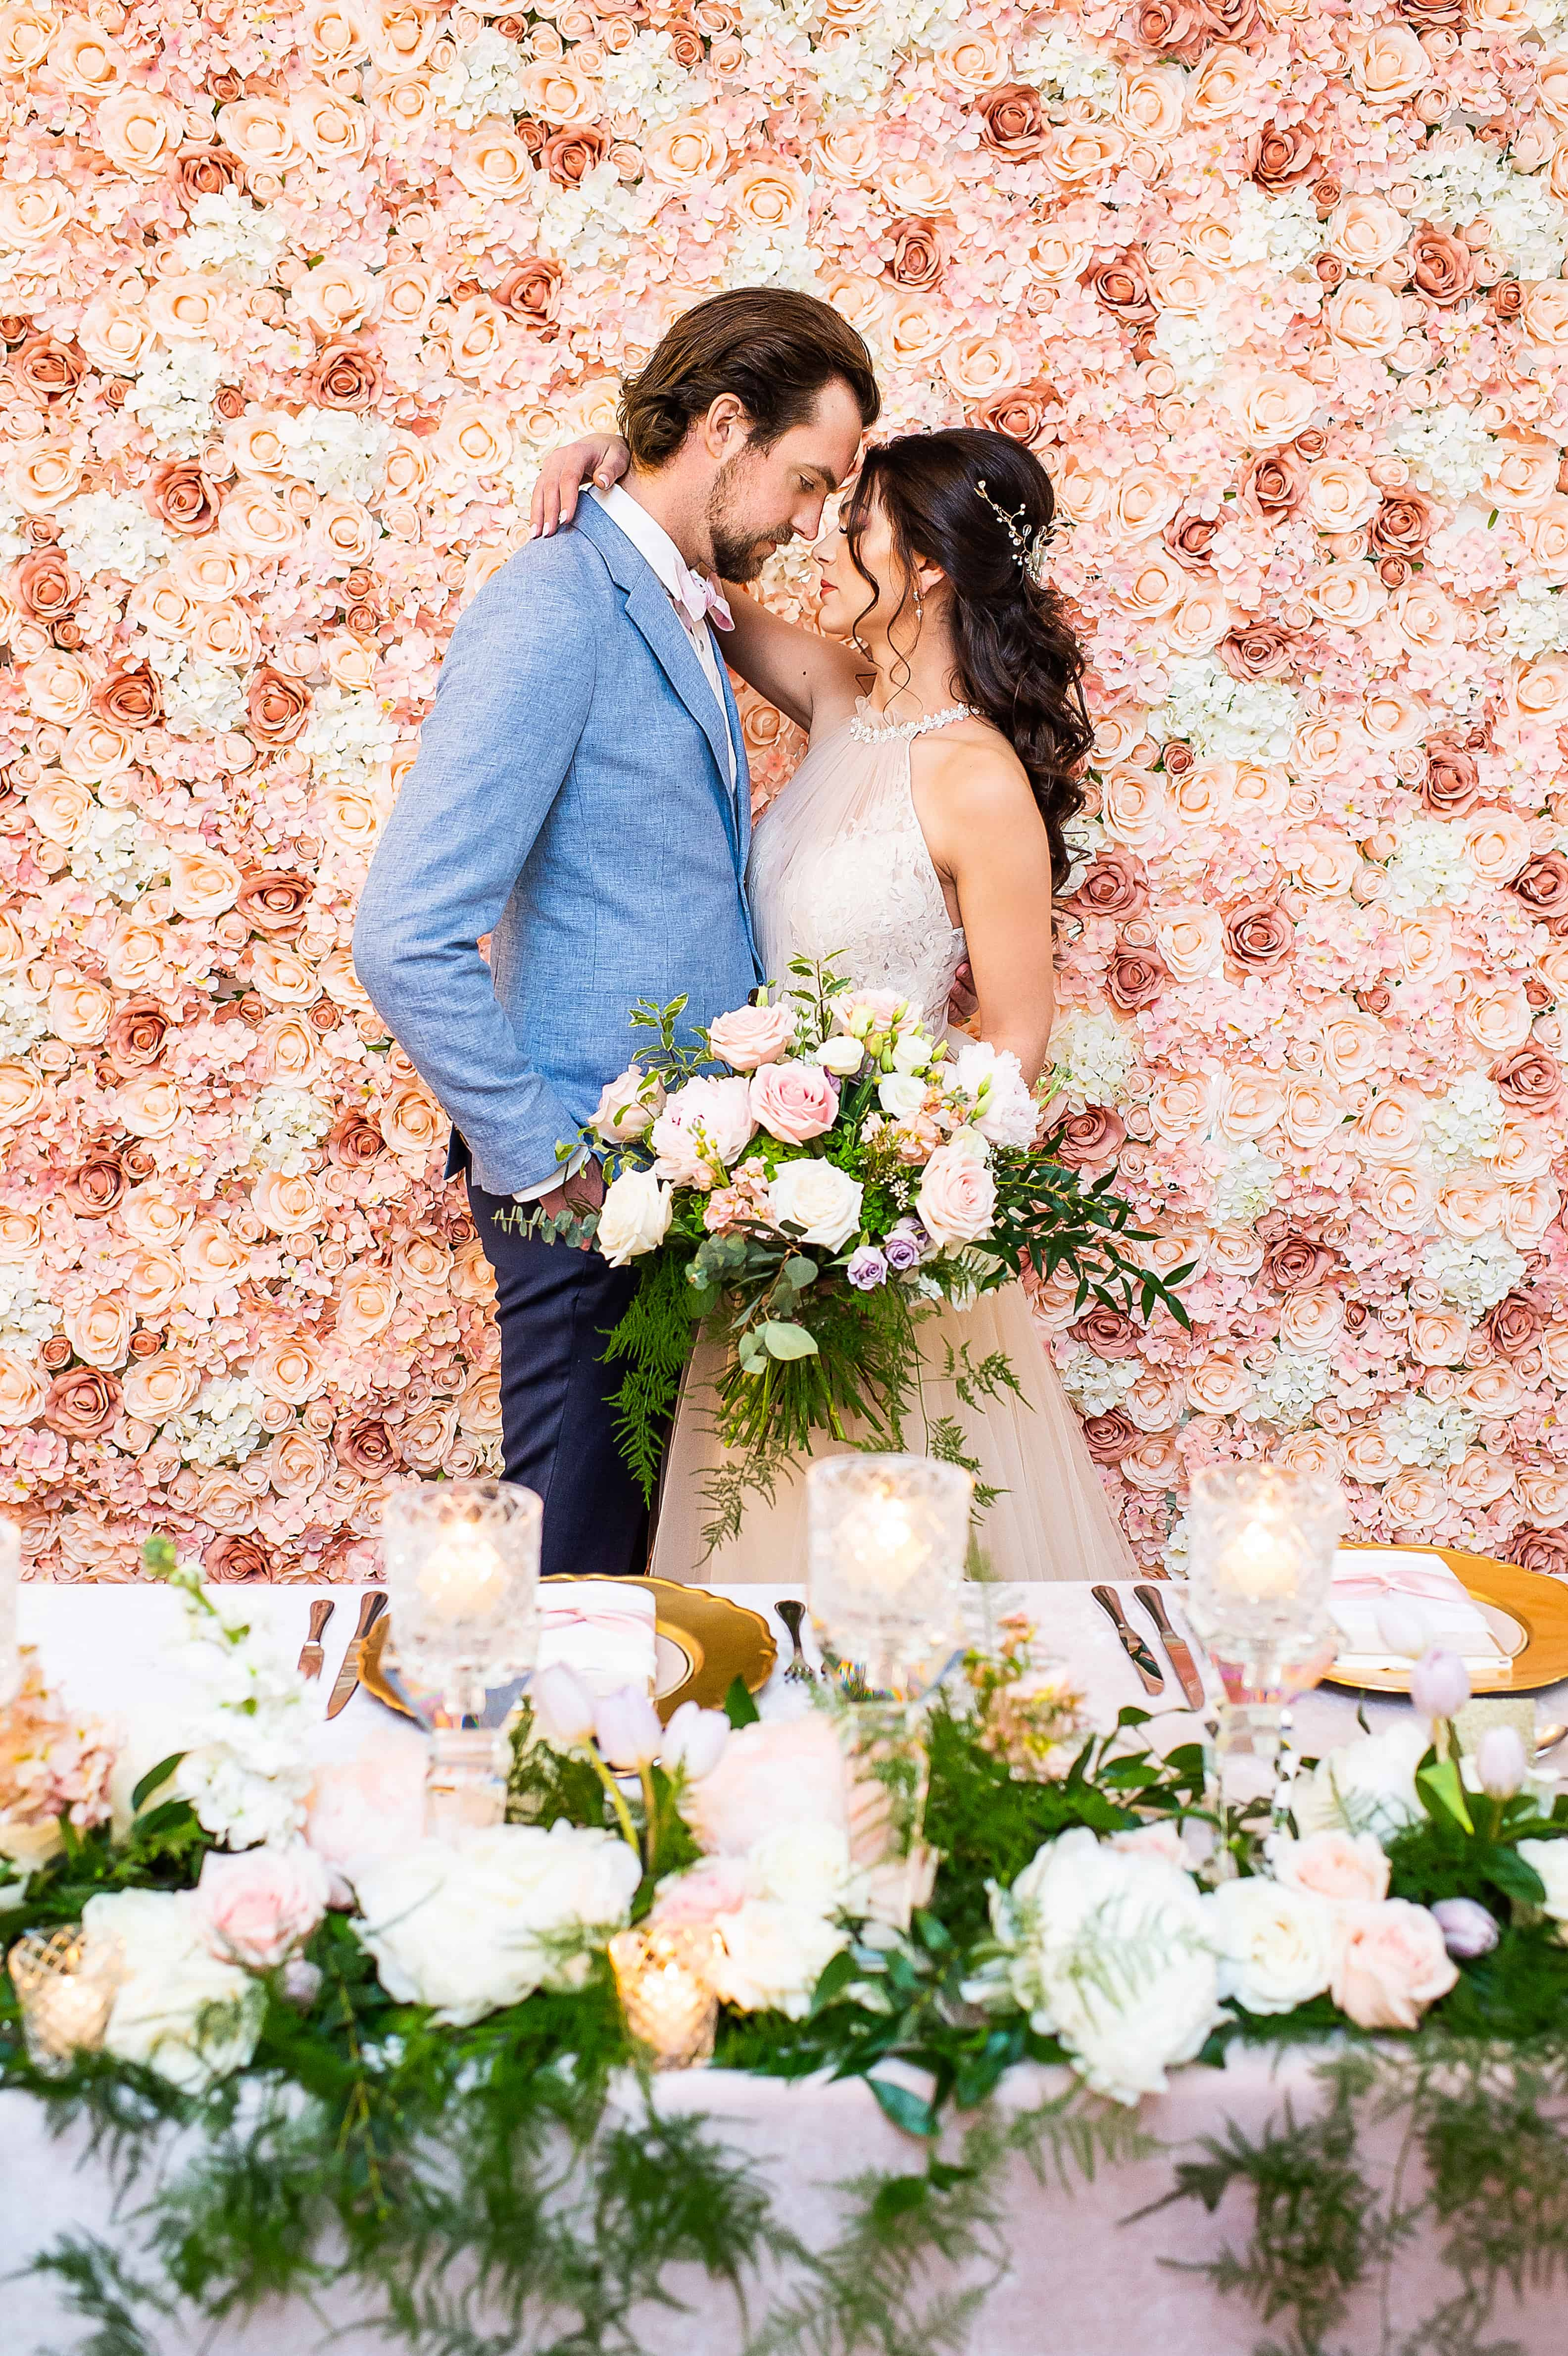 8f4c1e37b Get Married at The London Club | Weddings at 177 Queens Ave in London.